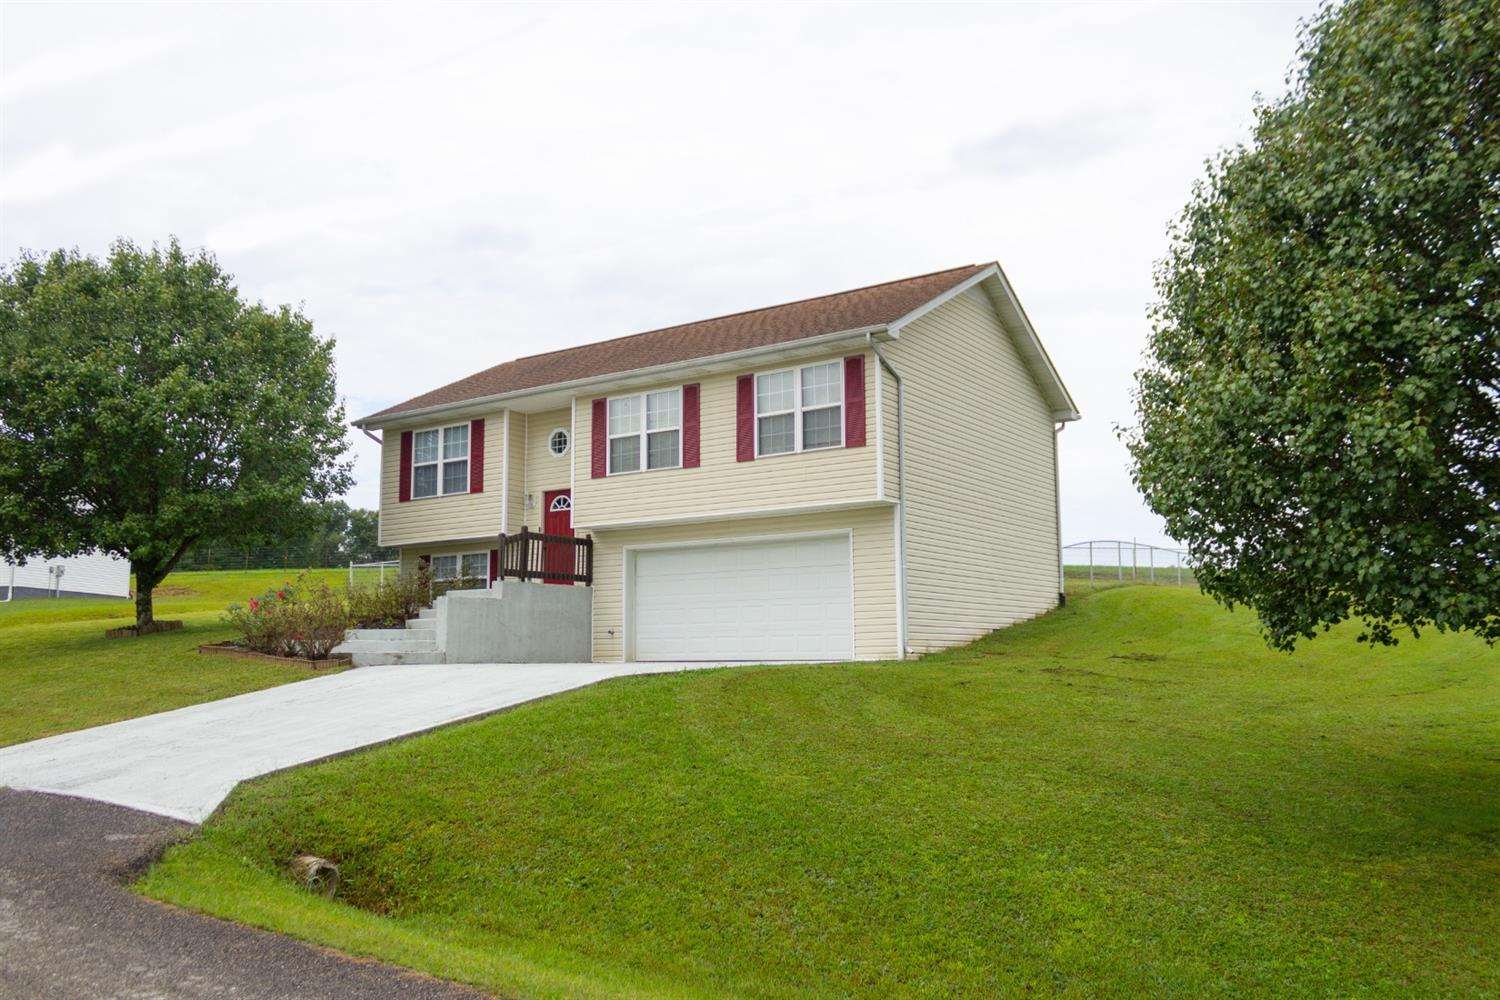 115 Cam Ct. Dr., Lily, KY